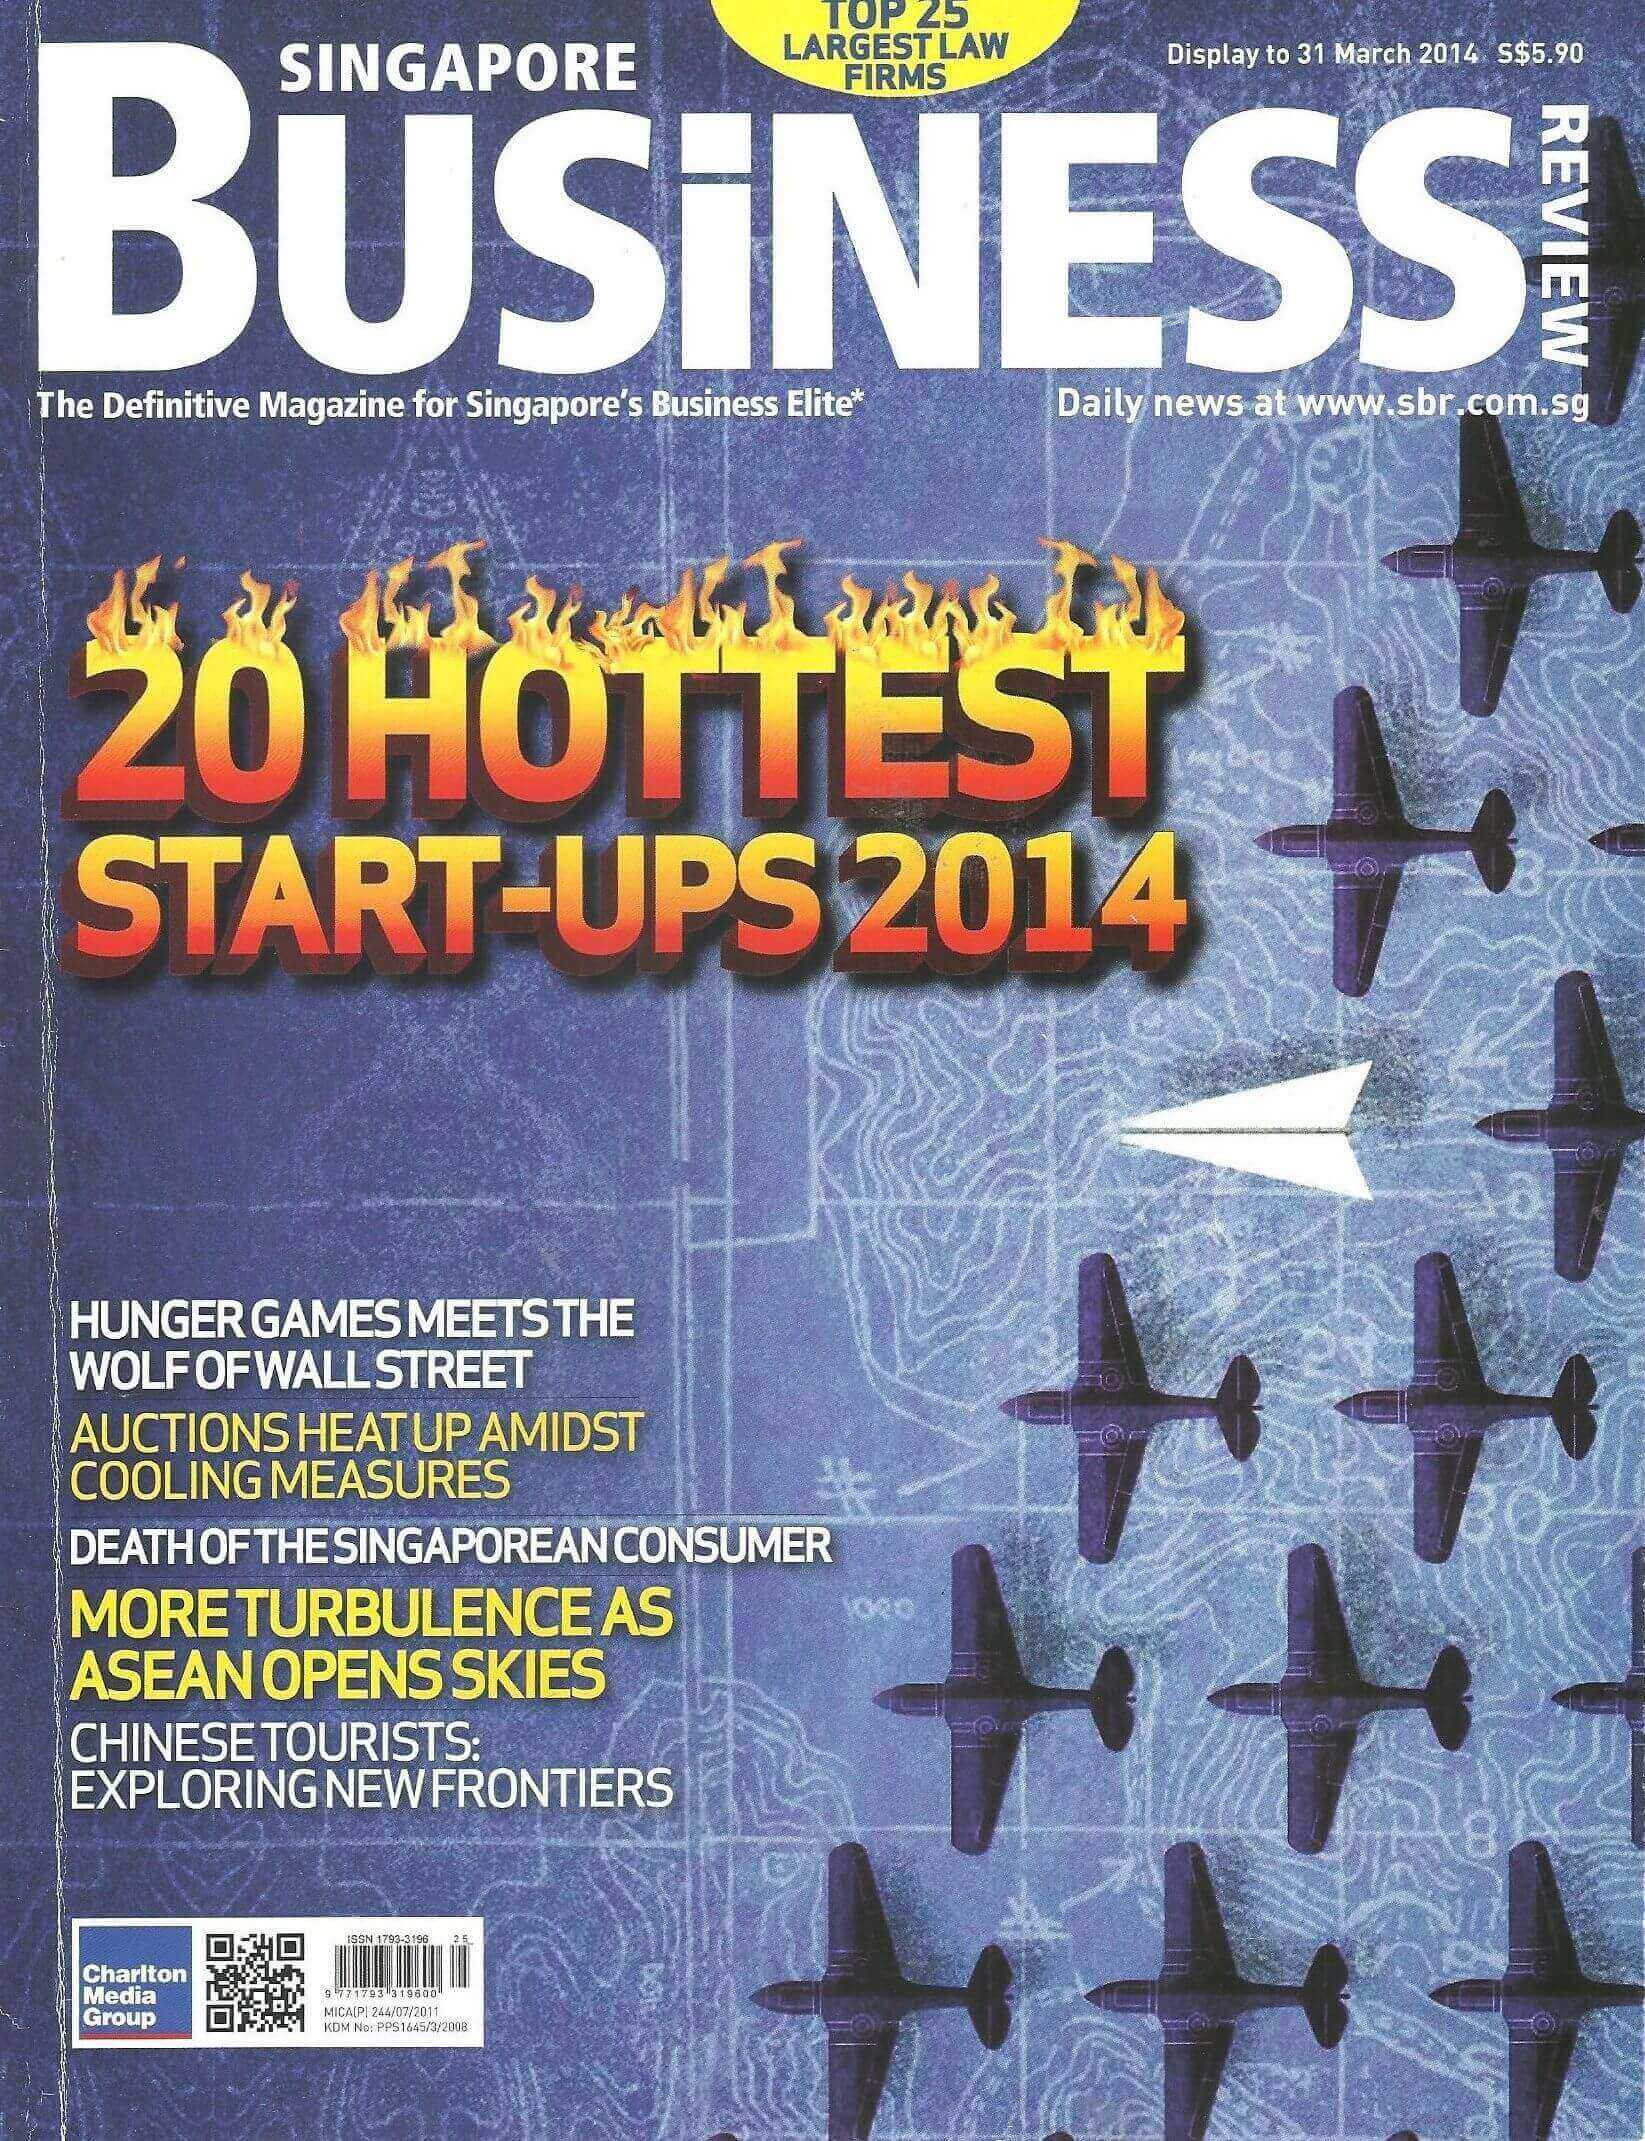 Singapore Business Review Magazine, April 2014